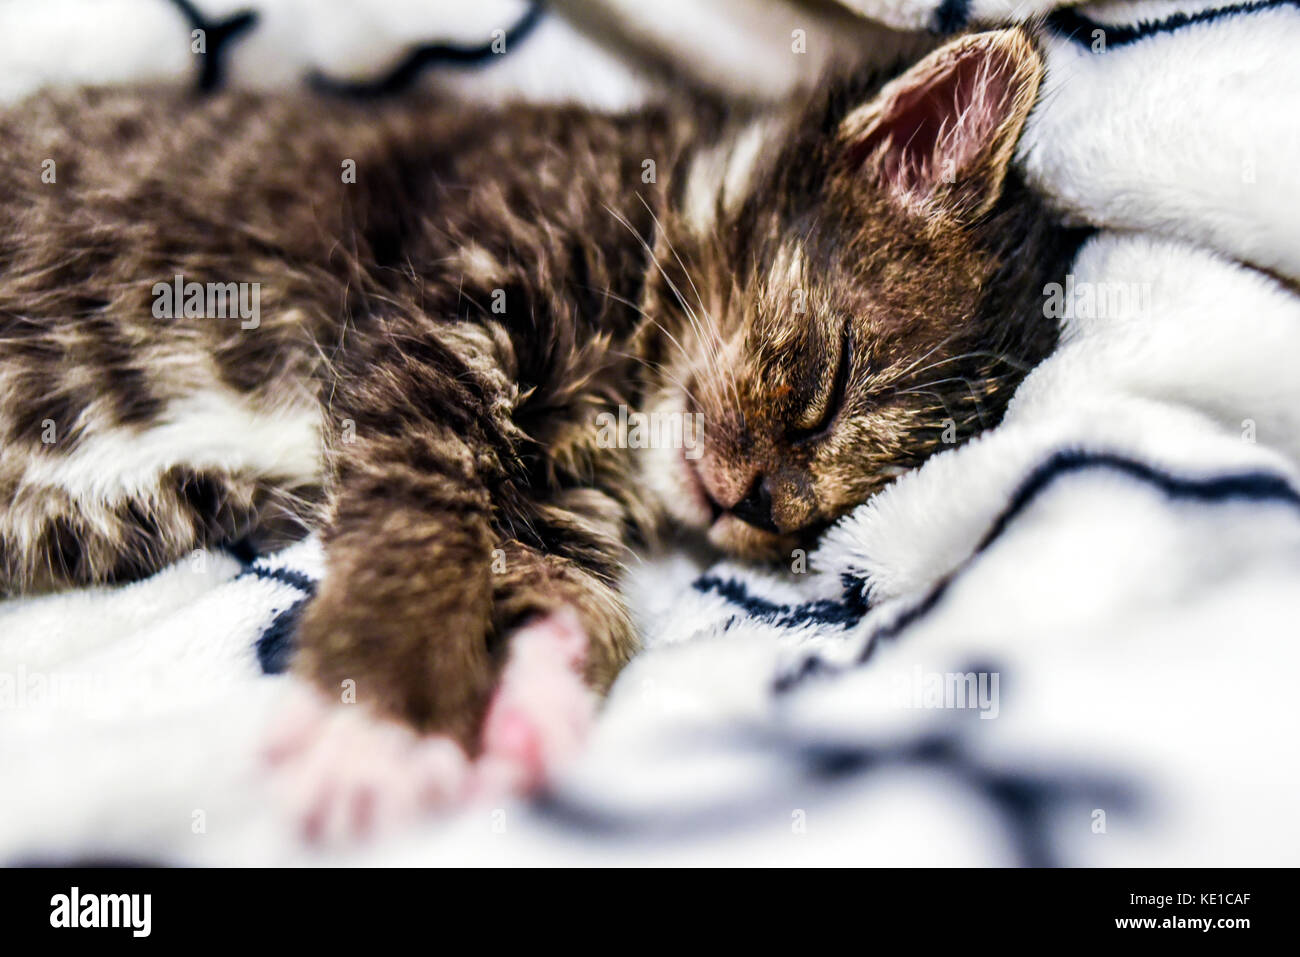 A cute little kitten sleeping in a blanket at home Stock